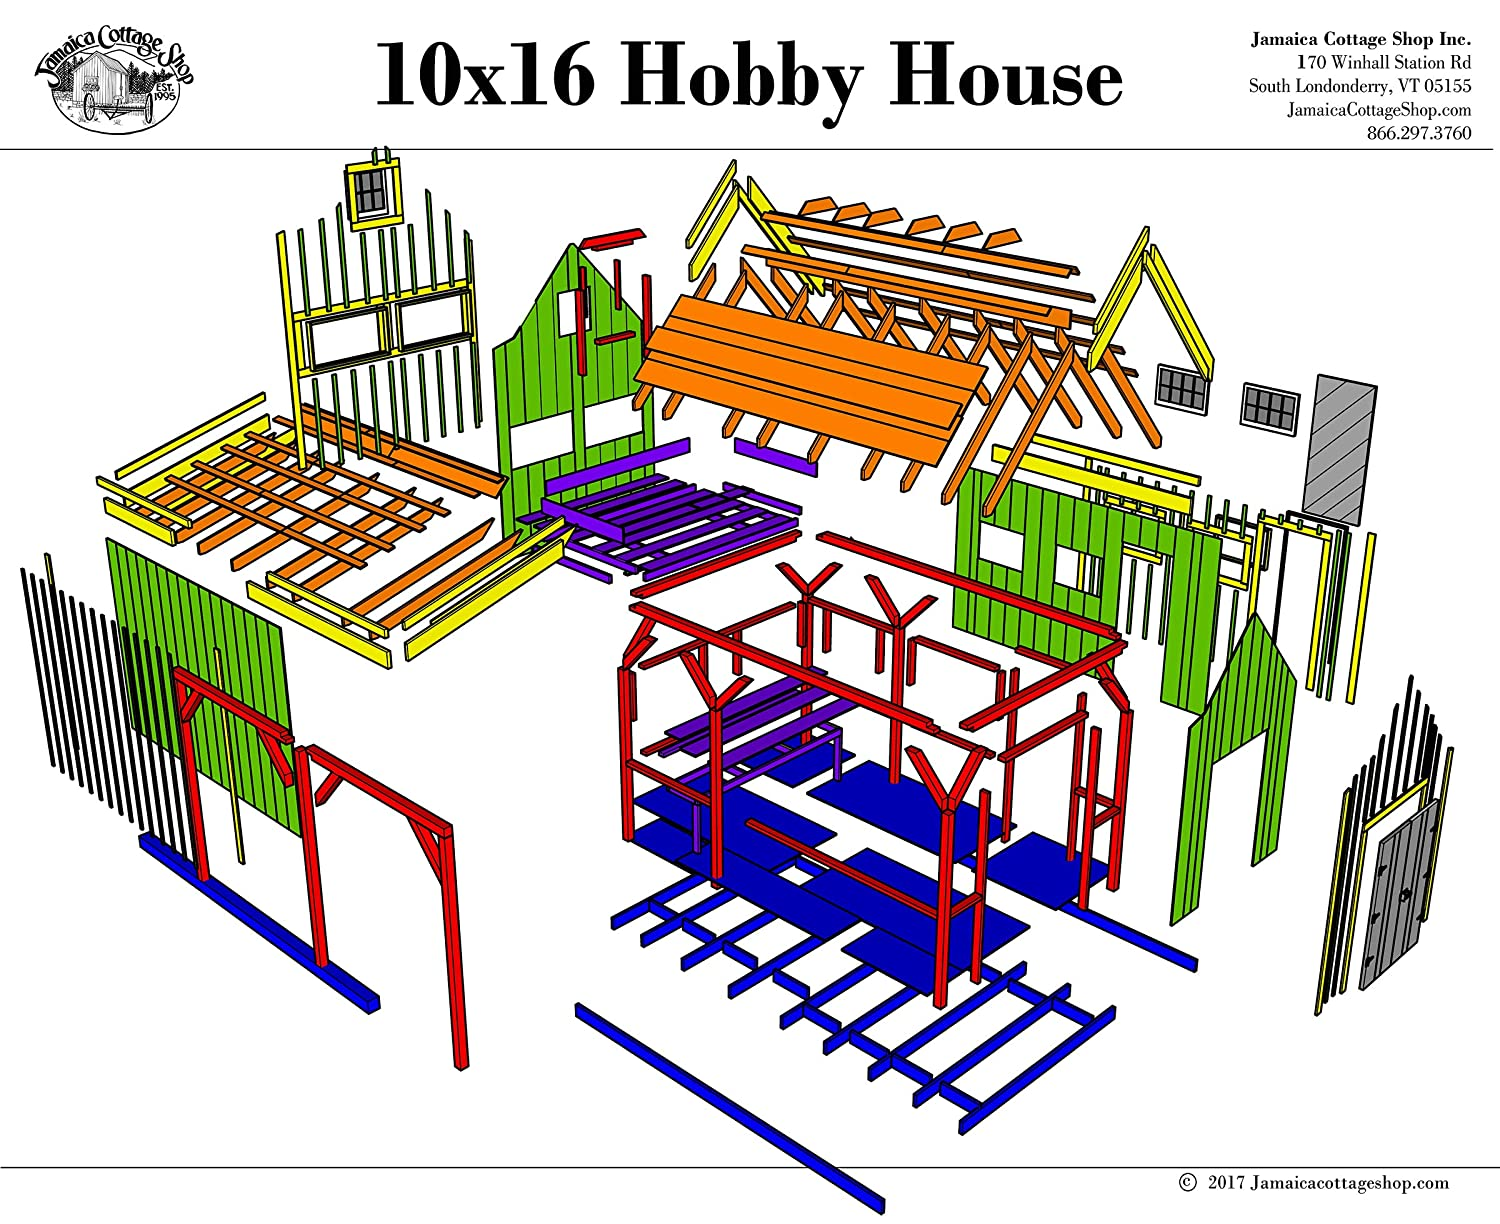 Timber Frame Post and Beam Cabin - 10x16 Hobby House